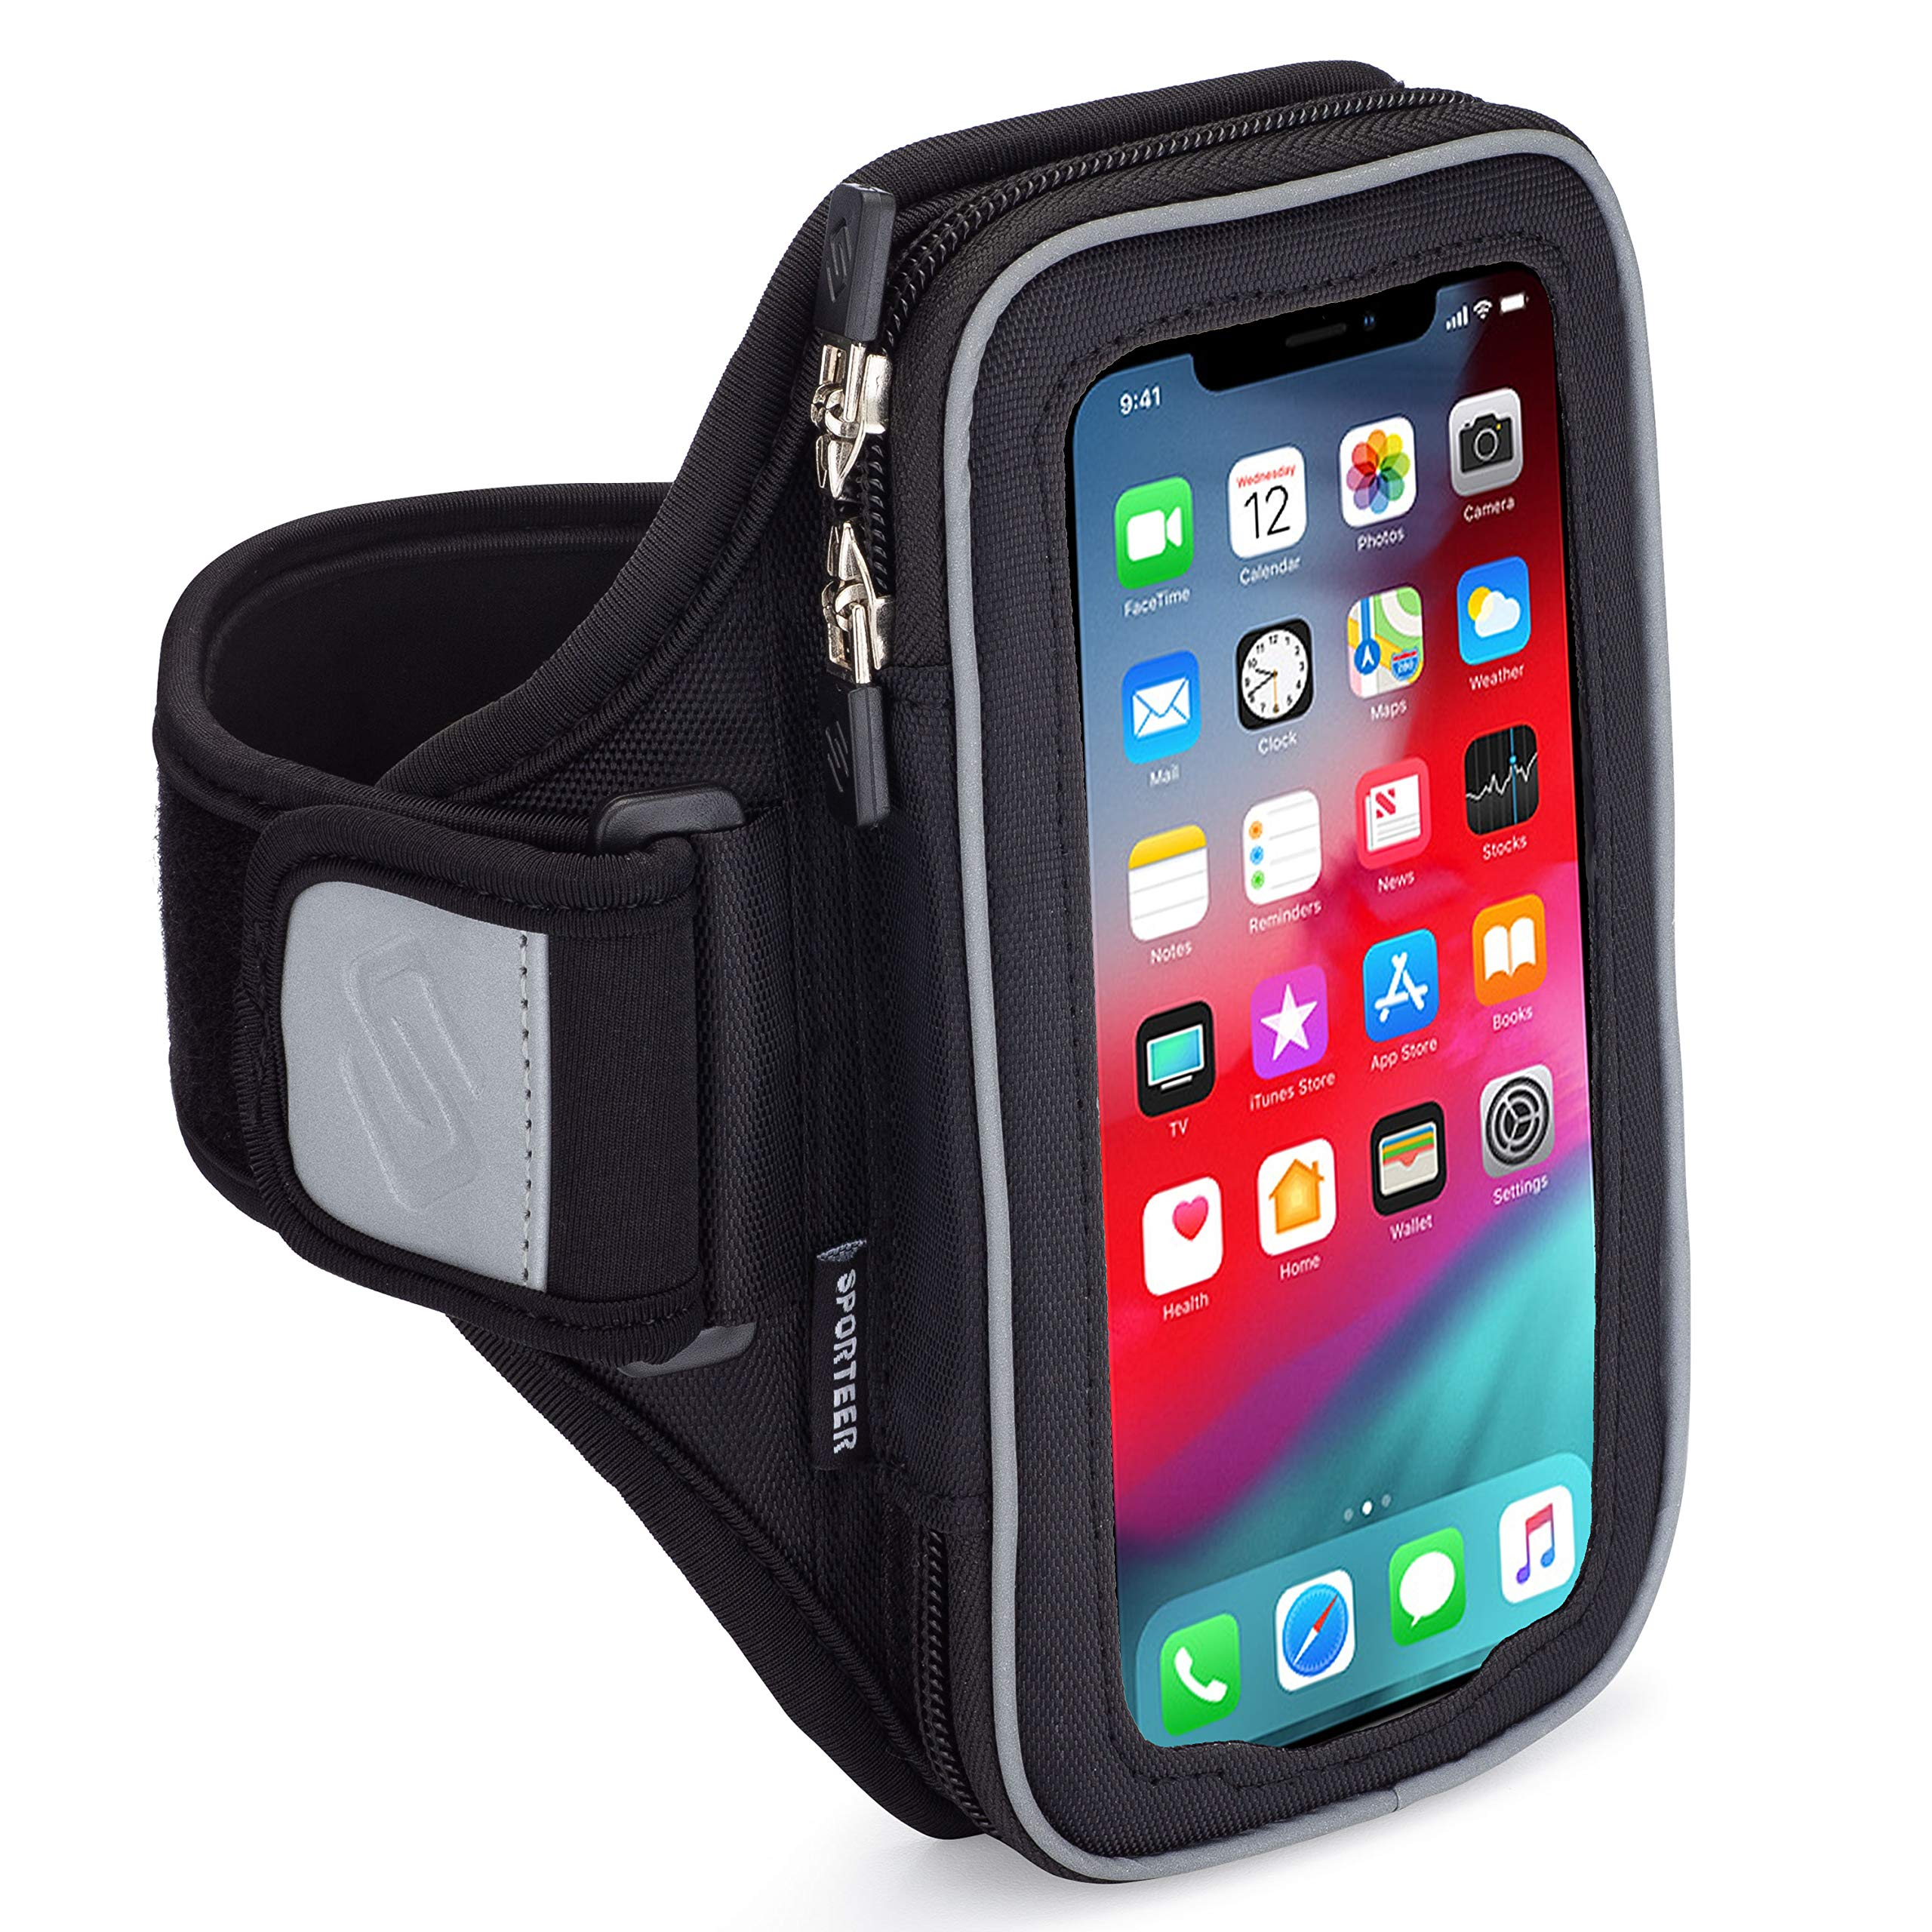 Sporteer Velocity V8 Running Armband - iPhone 11 Pro Max, Xs Max, iPhone 11, XR, 8 Plus, 7 Plus, Galaxy S10 Plus, S10, Note 10, 9, 8, S9 Plus, S8 Plus, Pixel 3 XL, 2 XL, LG, Moto - FITS Cases (M/L) by Sporteer